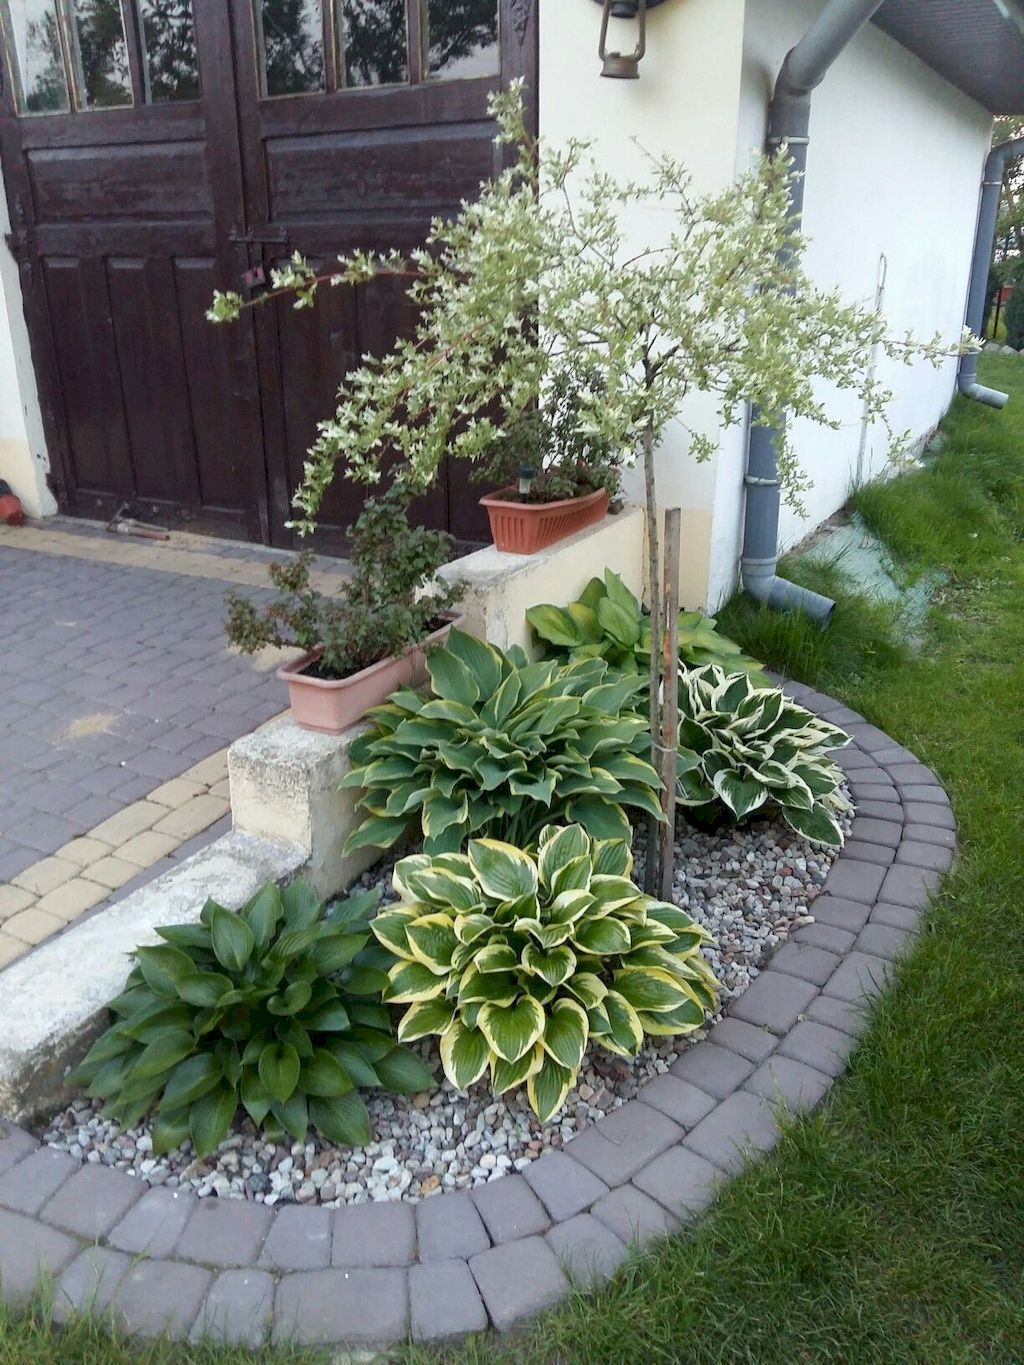 Adorable 75 Gorgeous Low Maintenance Front Yard Landscaping Ideas Https Ide Small Yard Landscaping Small Front Yard Landscaping Front Yard Landscaping Design